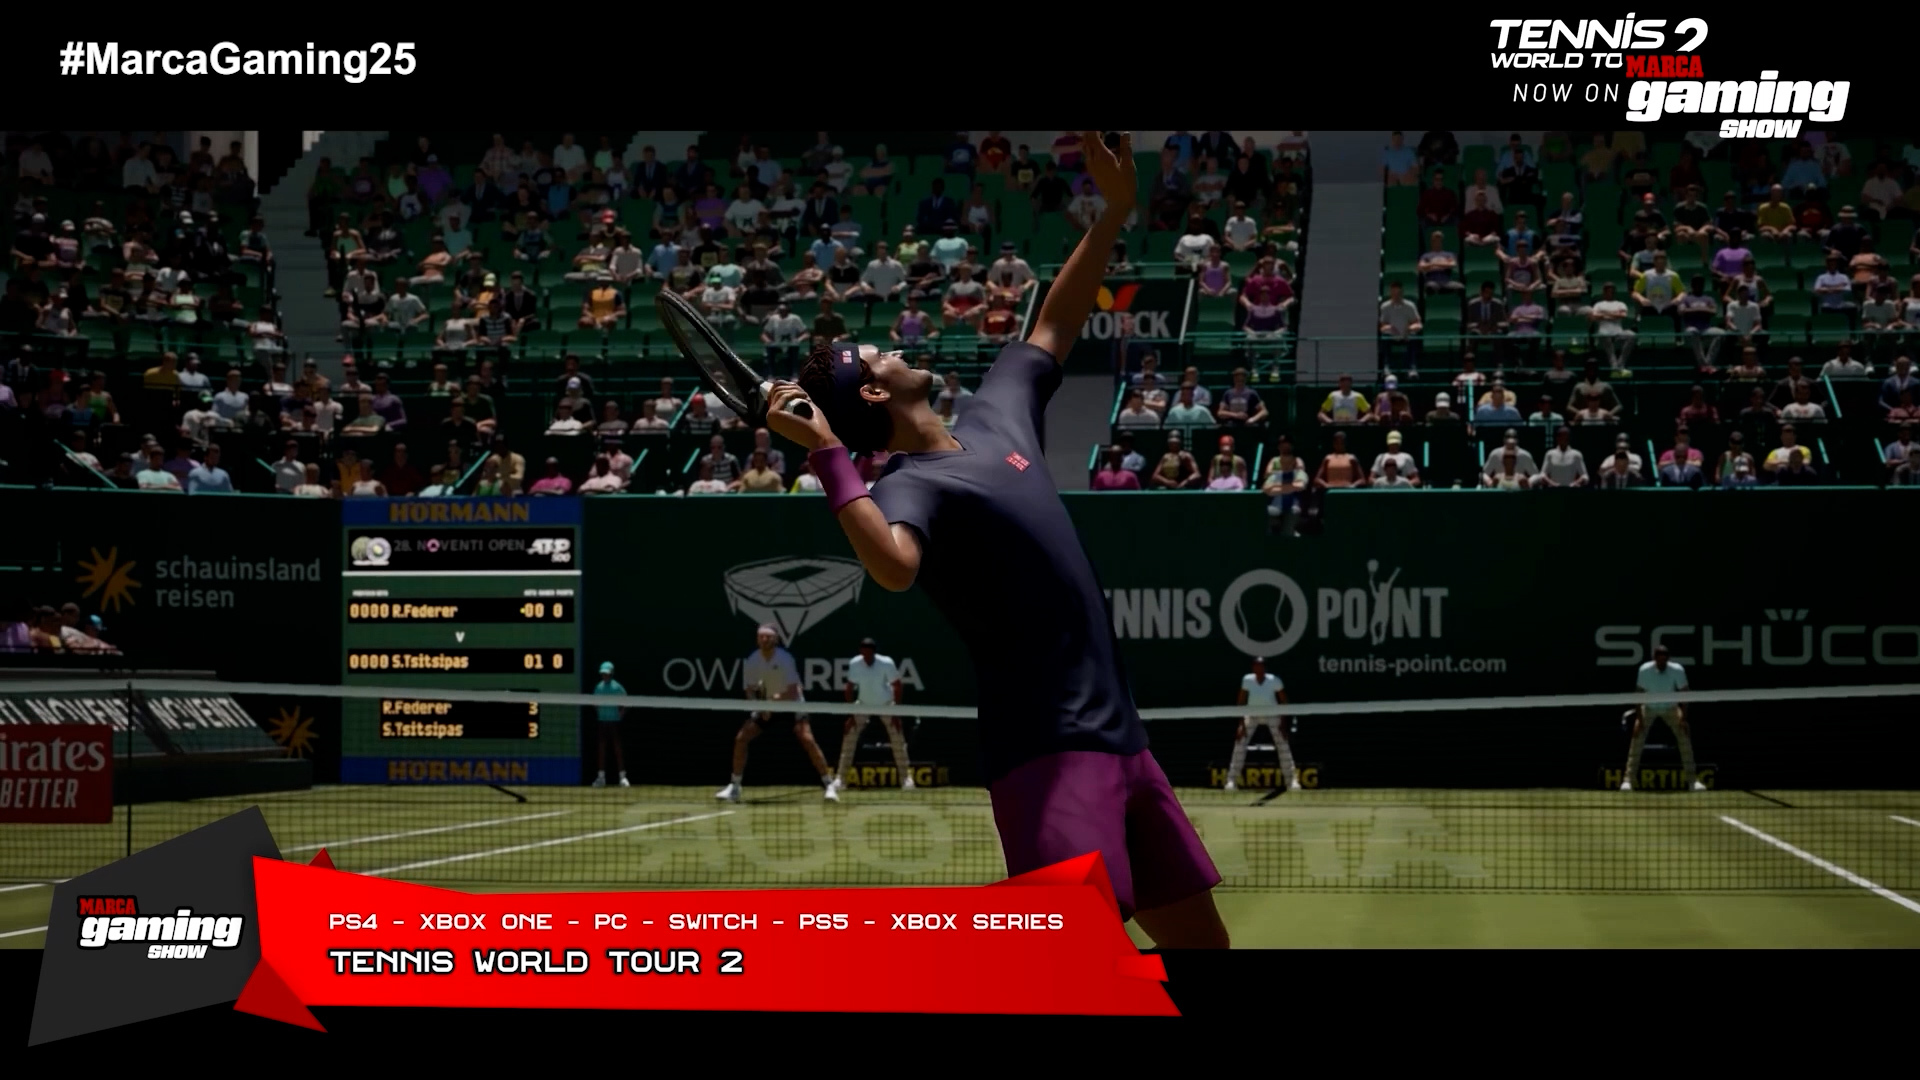 Tennis World Tour 2 (PS5, Xbox Series)